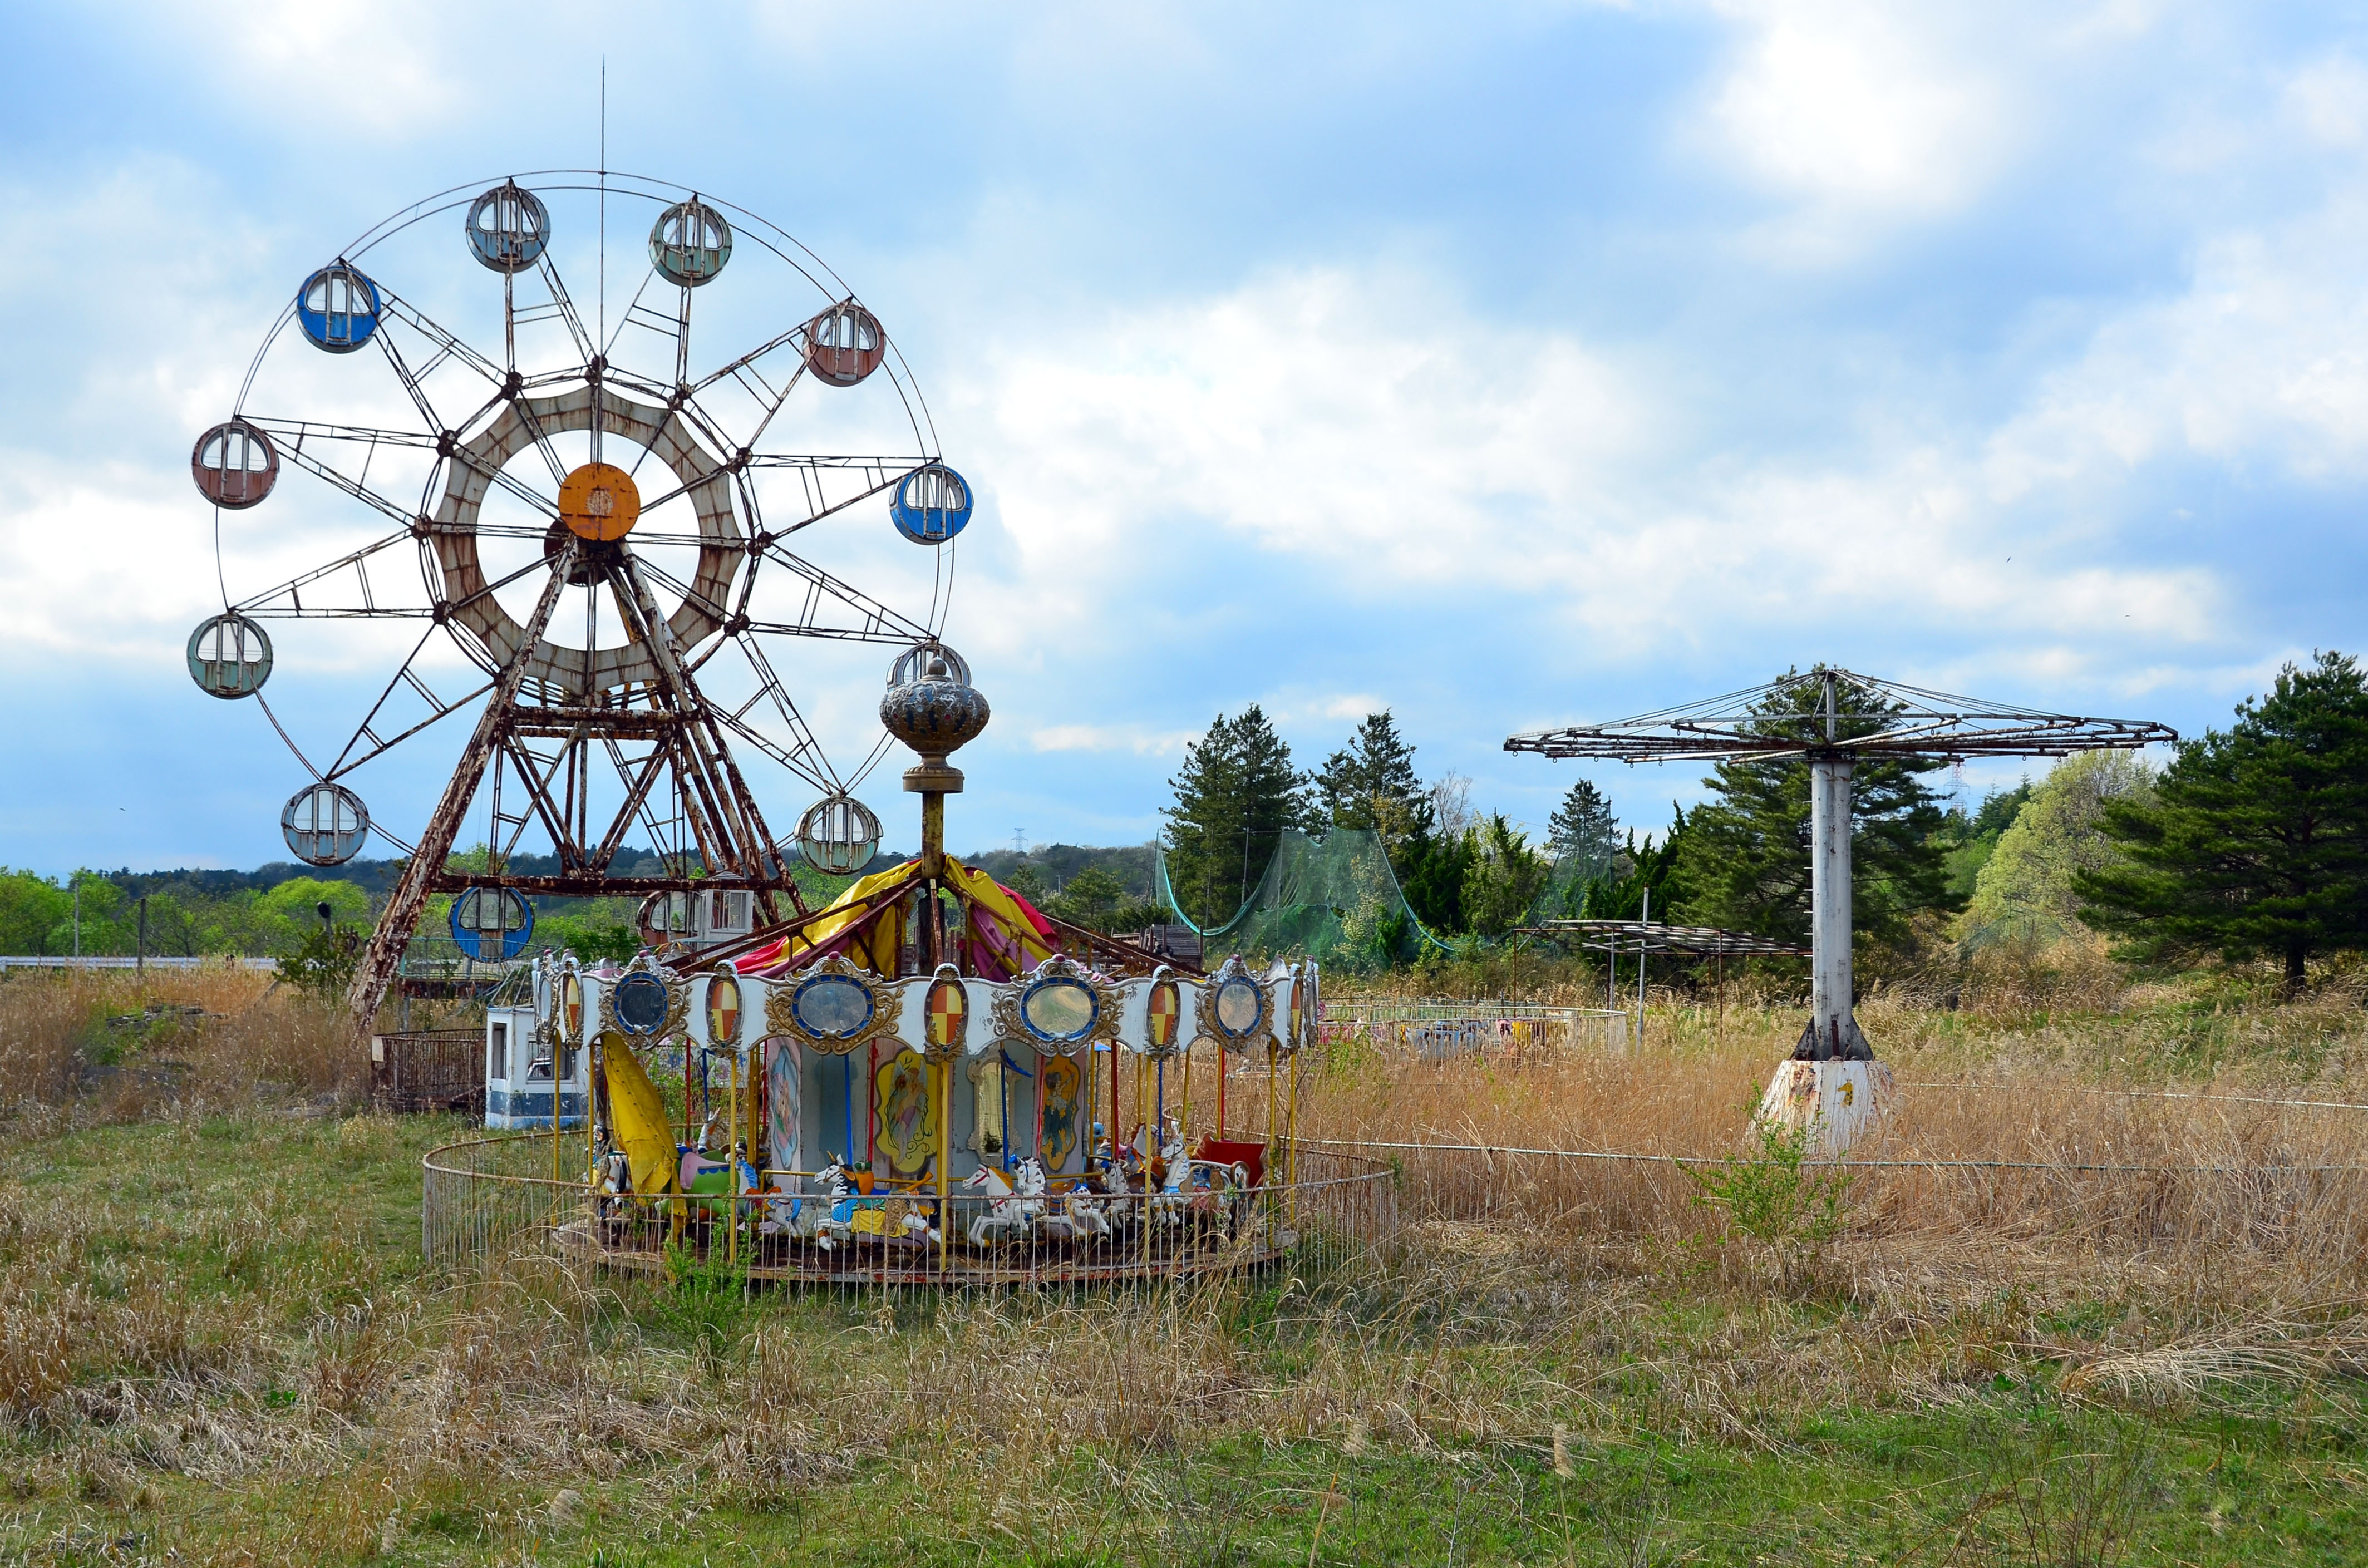 Images Show Abandoned Theme Park Plauged By Curse